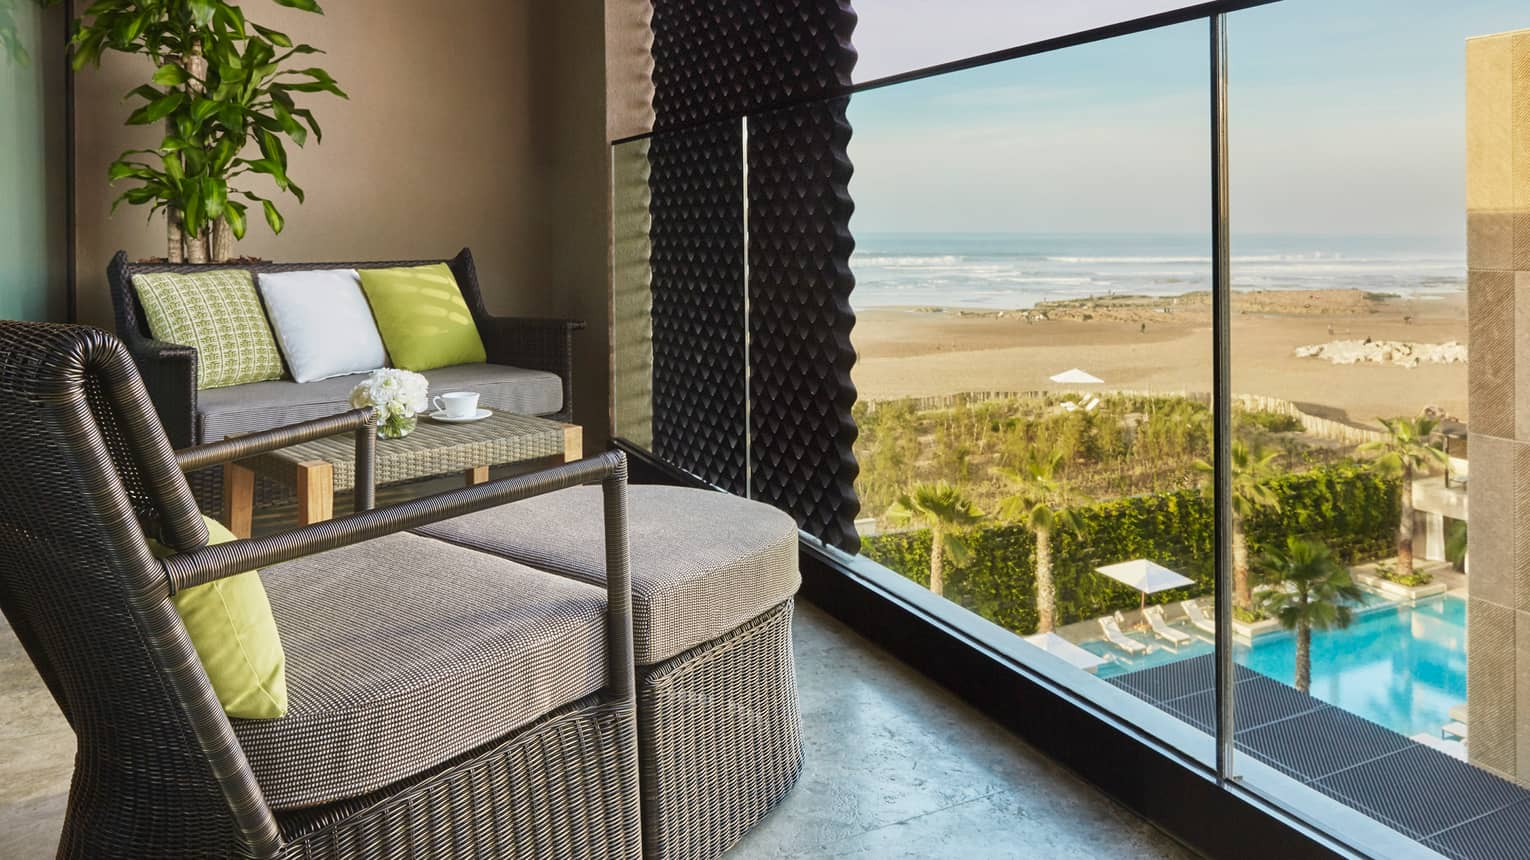 Premier Room balcony large wicker chairs with cushions, lime green accent pillows, beach views